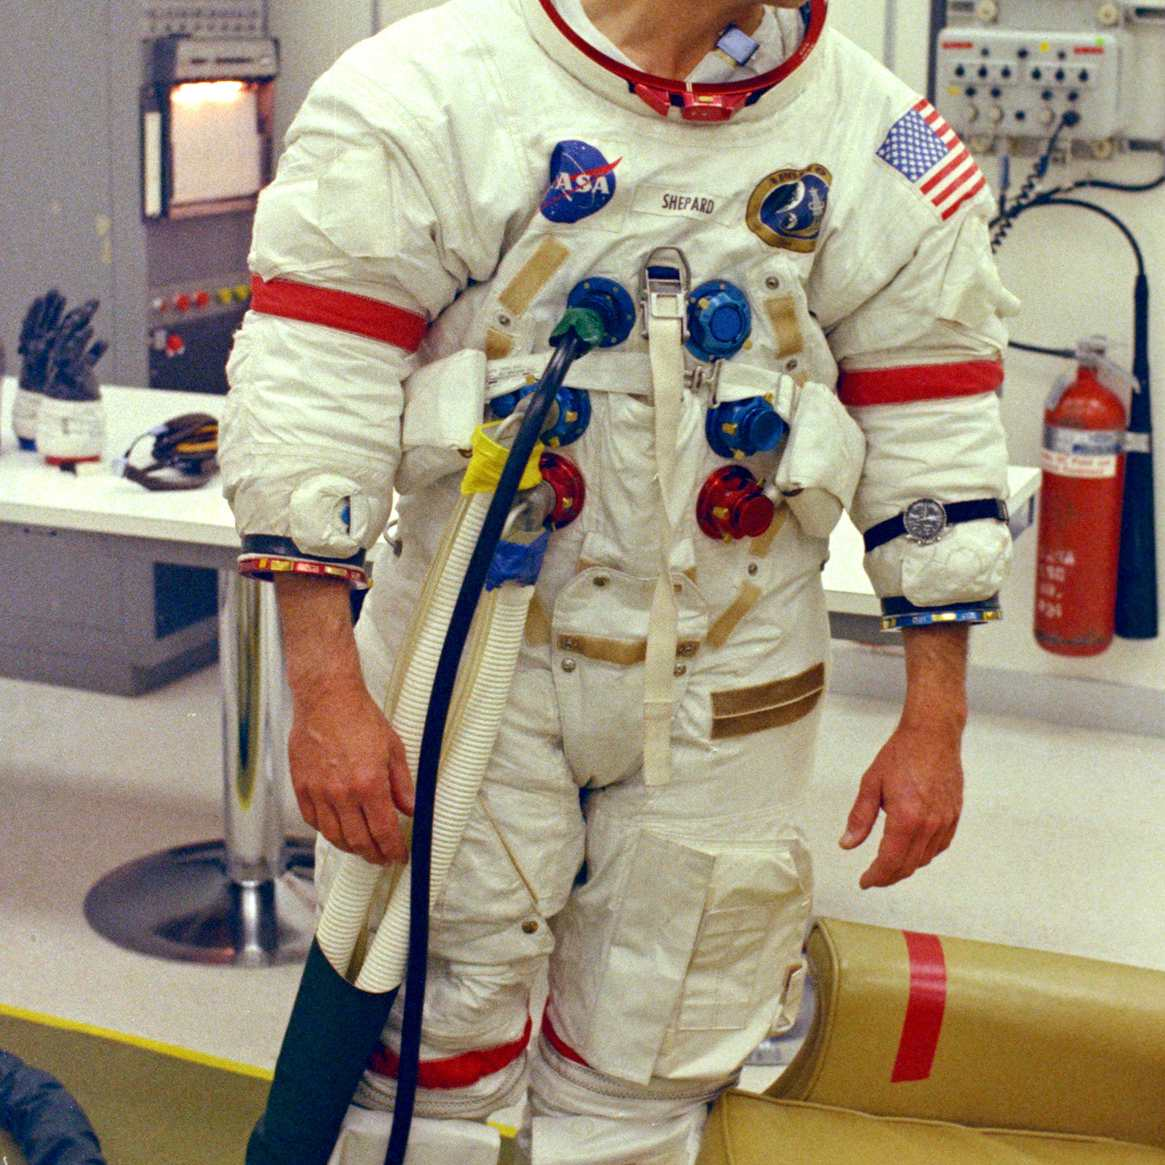 Astronaut Alan Shepard undergoes suiting up operations during Apollo 14